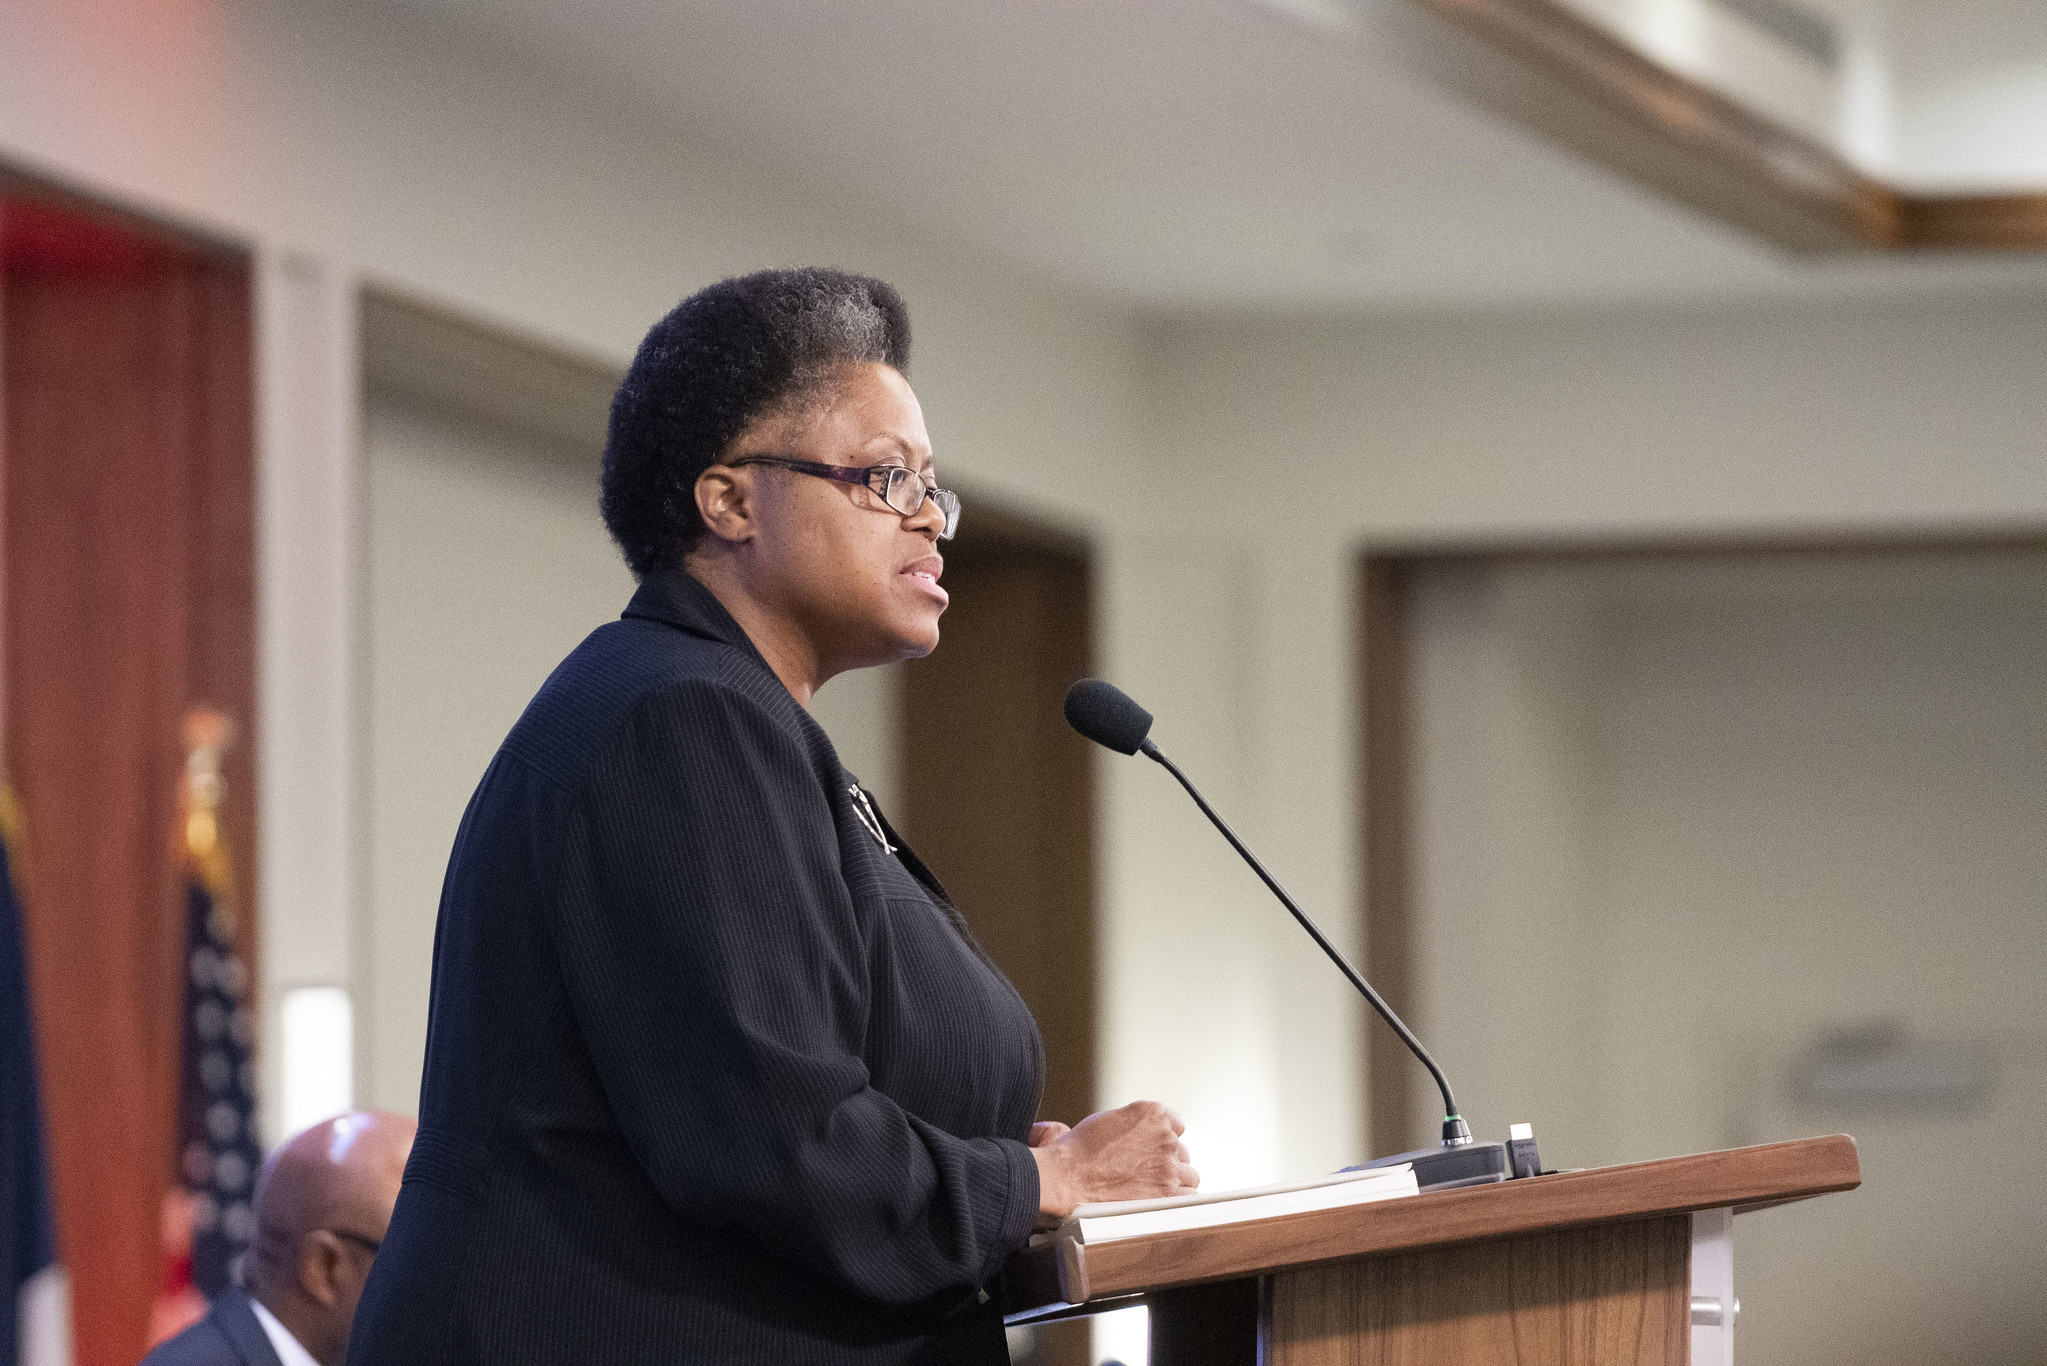 Carolyn Forrest represent a report on diversity in the NAD during the 2019 Year-End Meeting on Nov. 1. Photo by Dan Weber